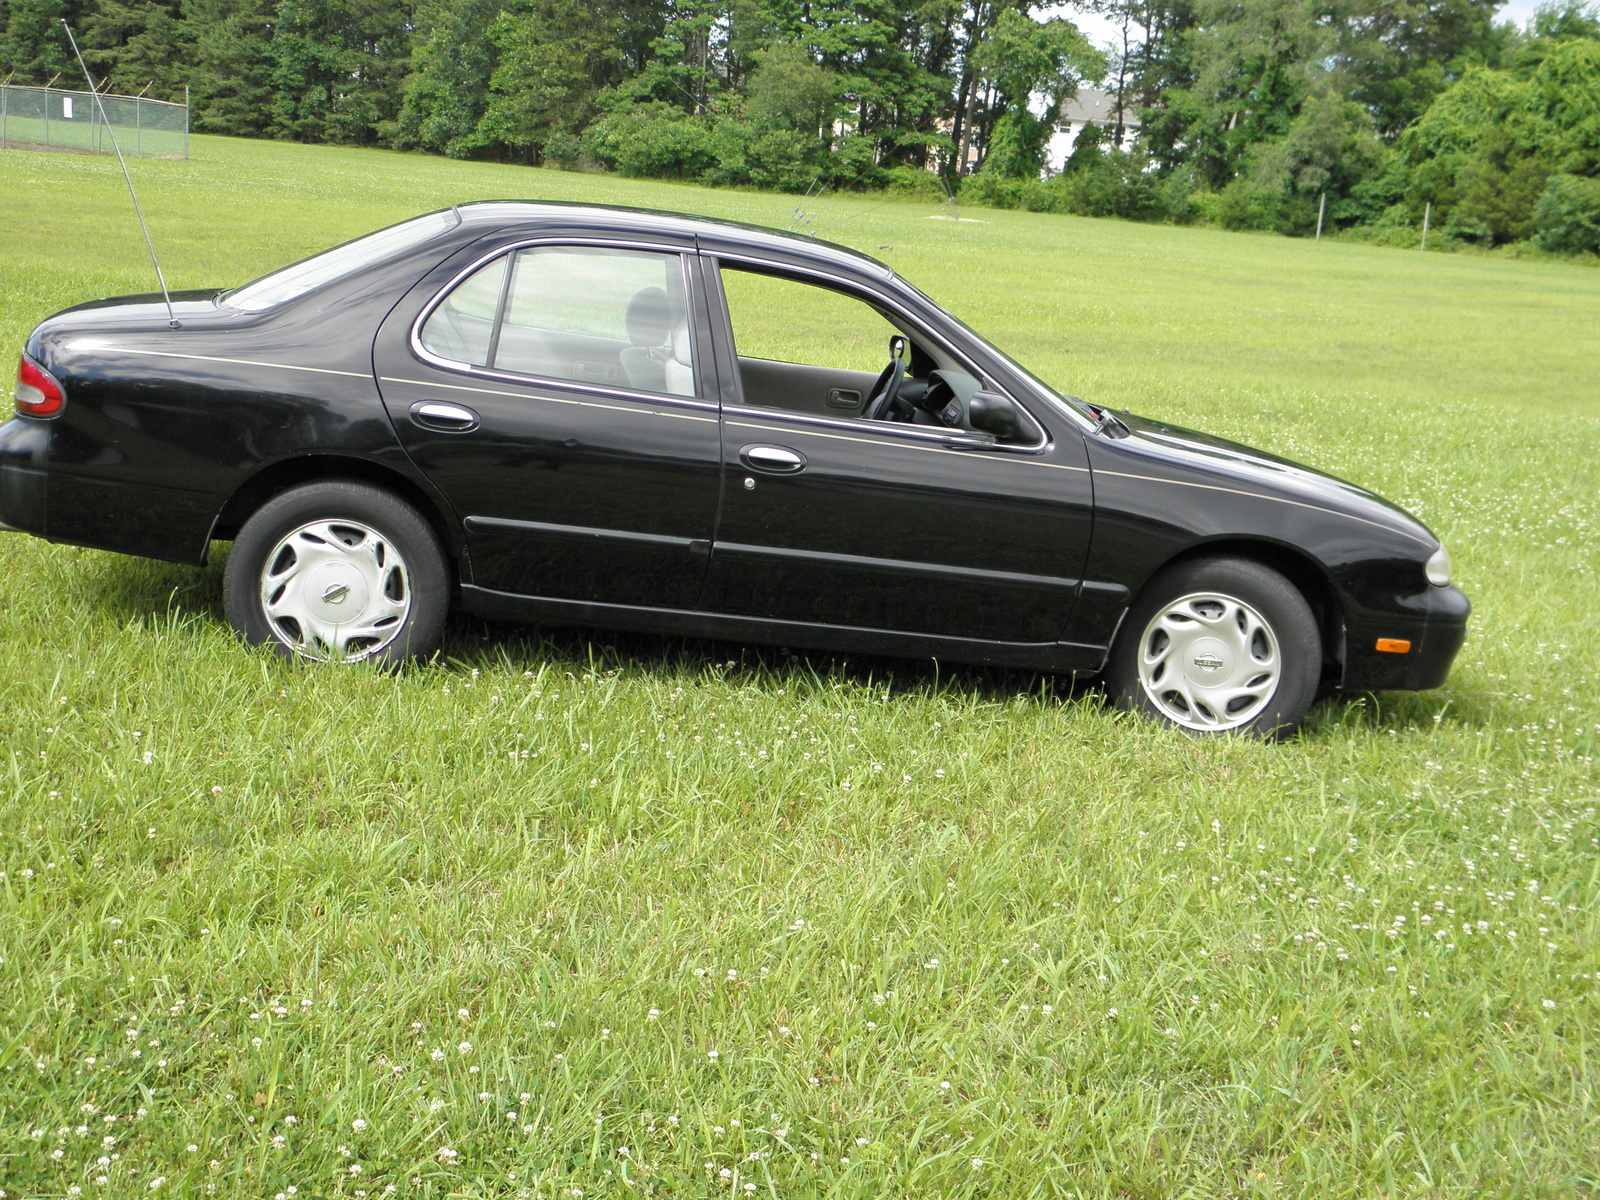 Picture Of 1997 Nissan Altima Gxe Exterior